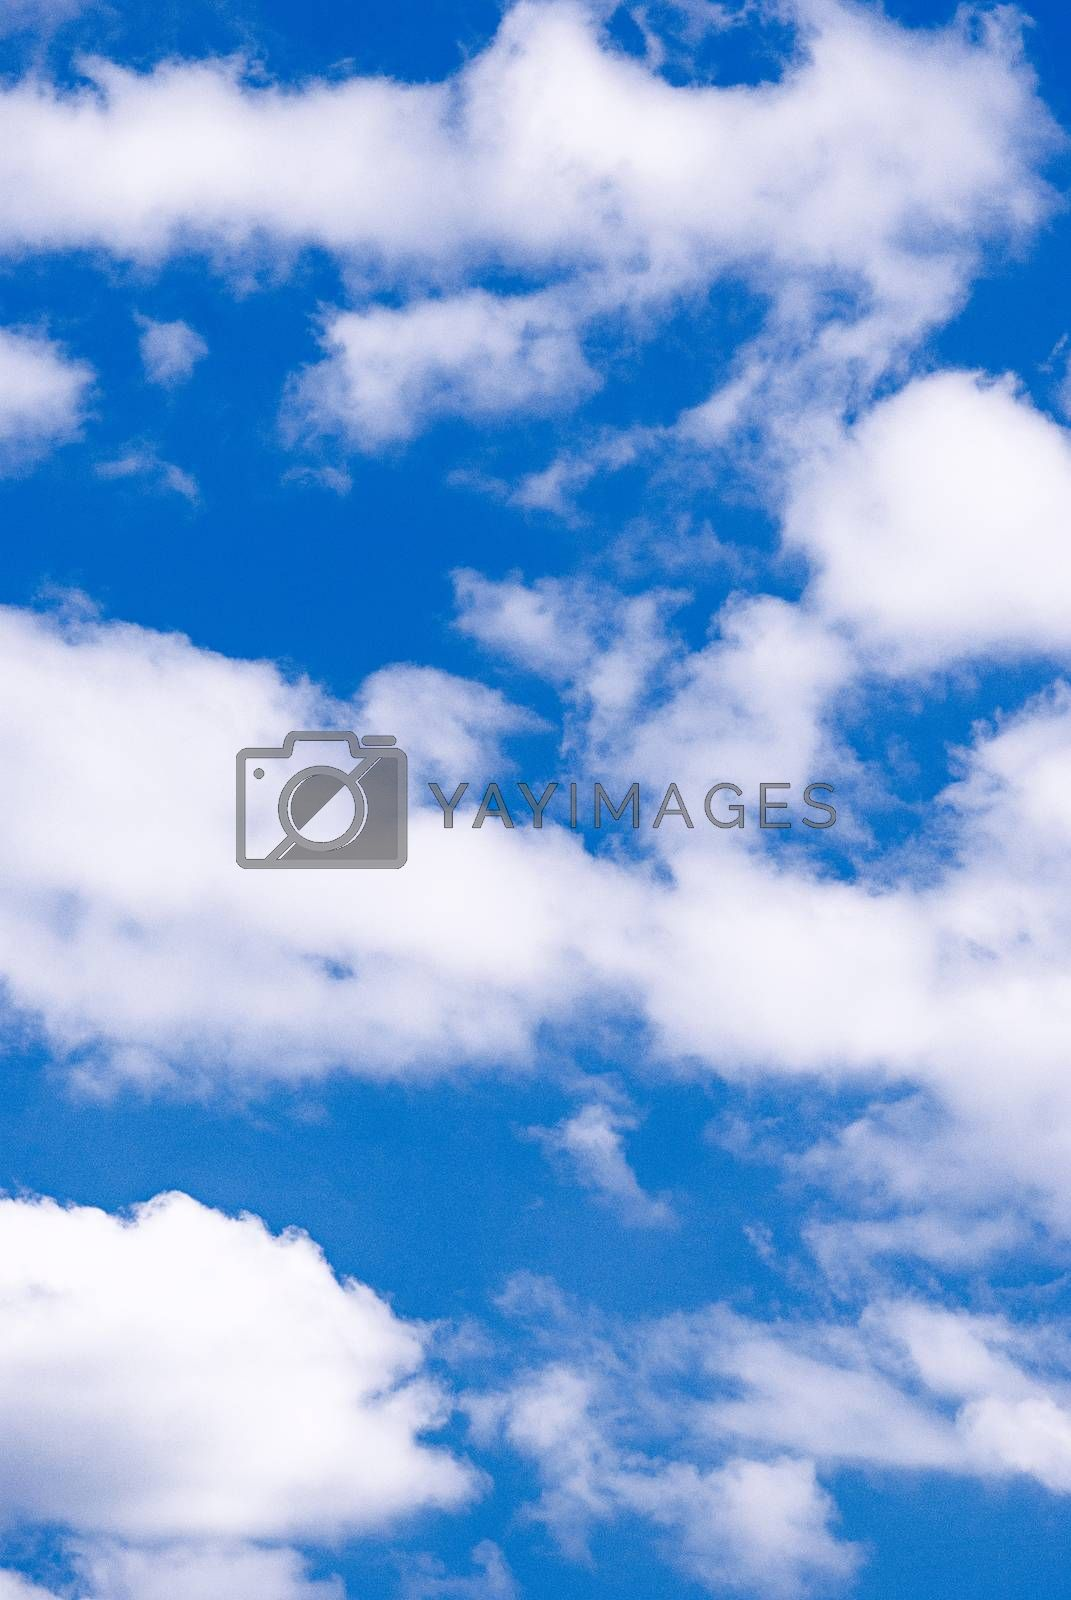 Royalty free image of blue sky with cloud by AEK